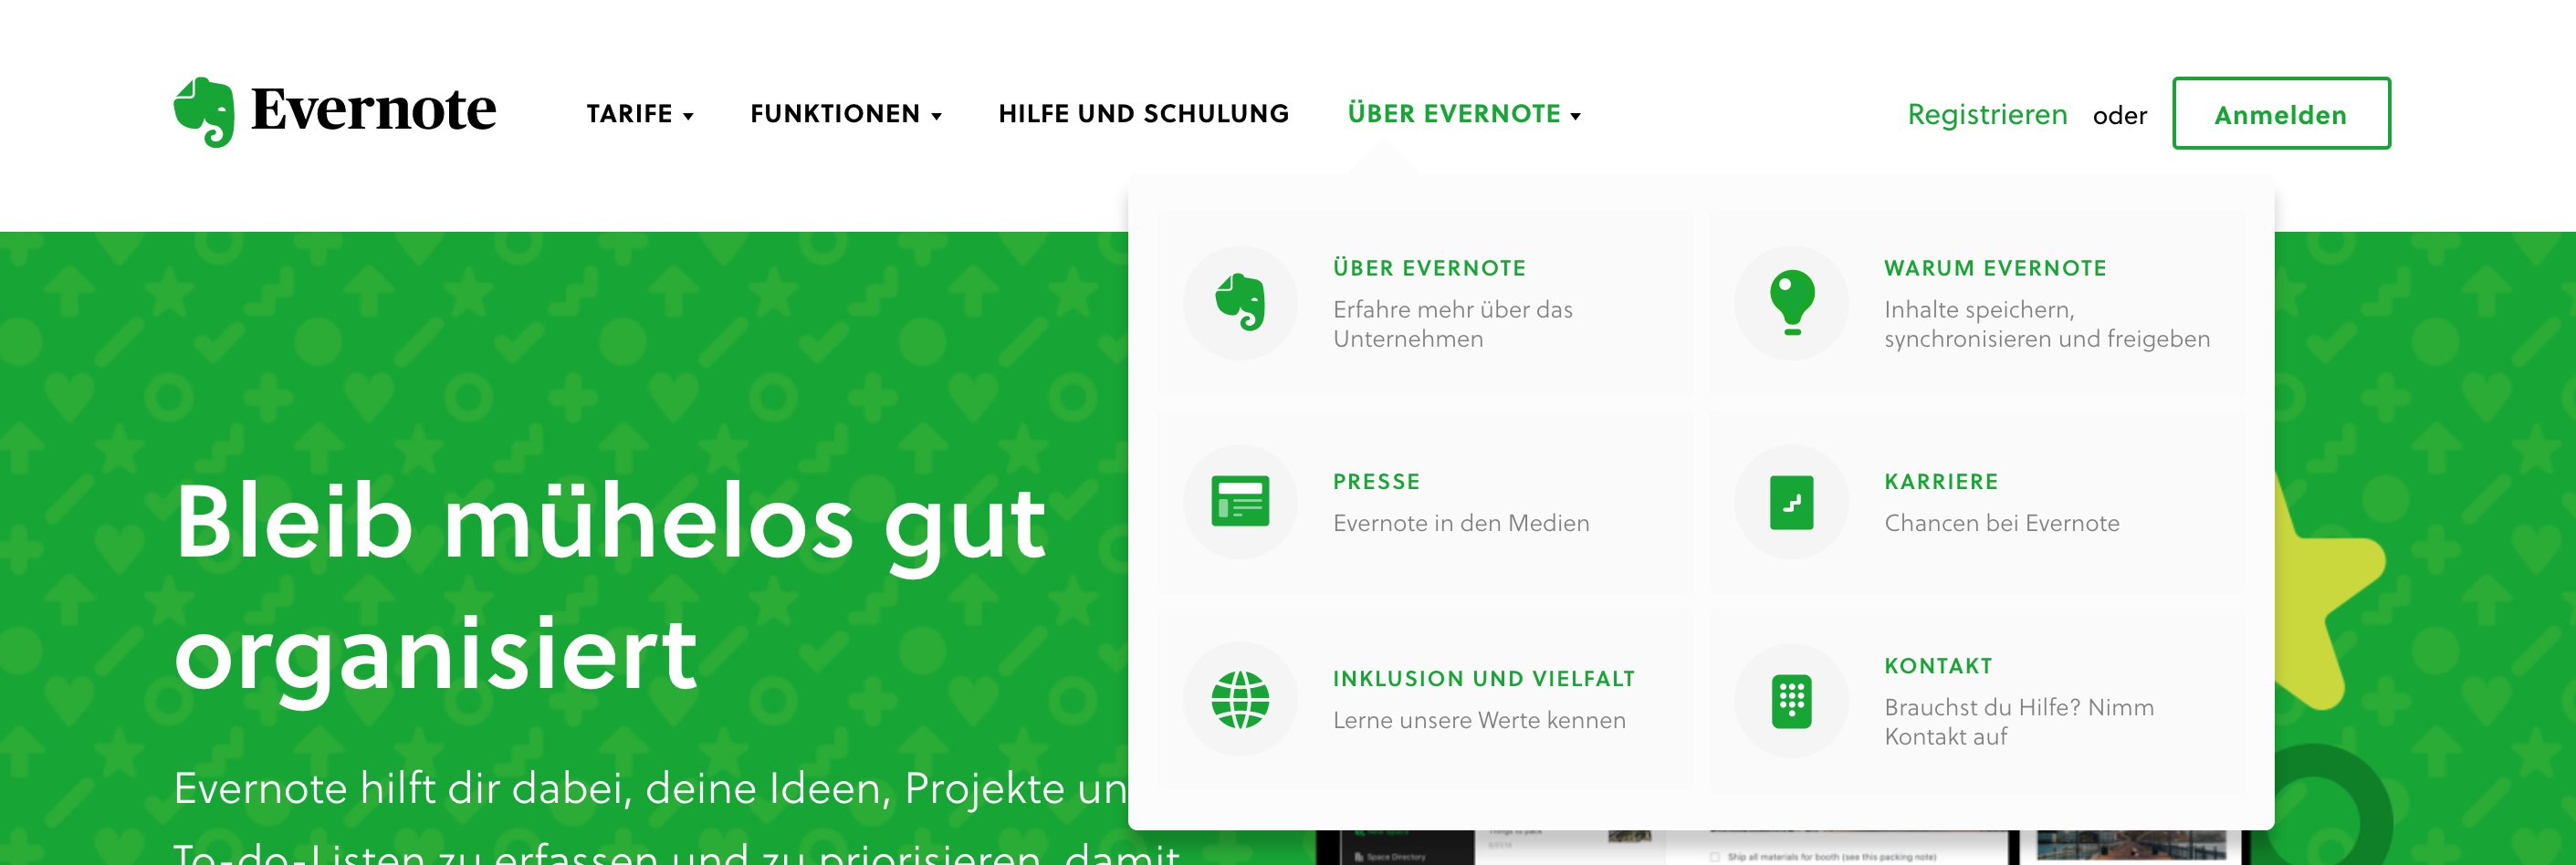 Vereinfachte Navigation durch Icons bei Evernote